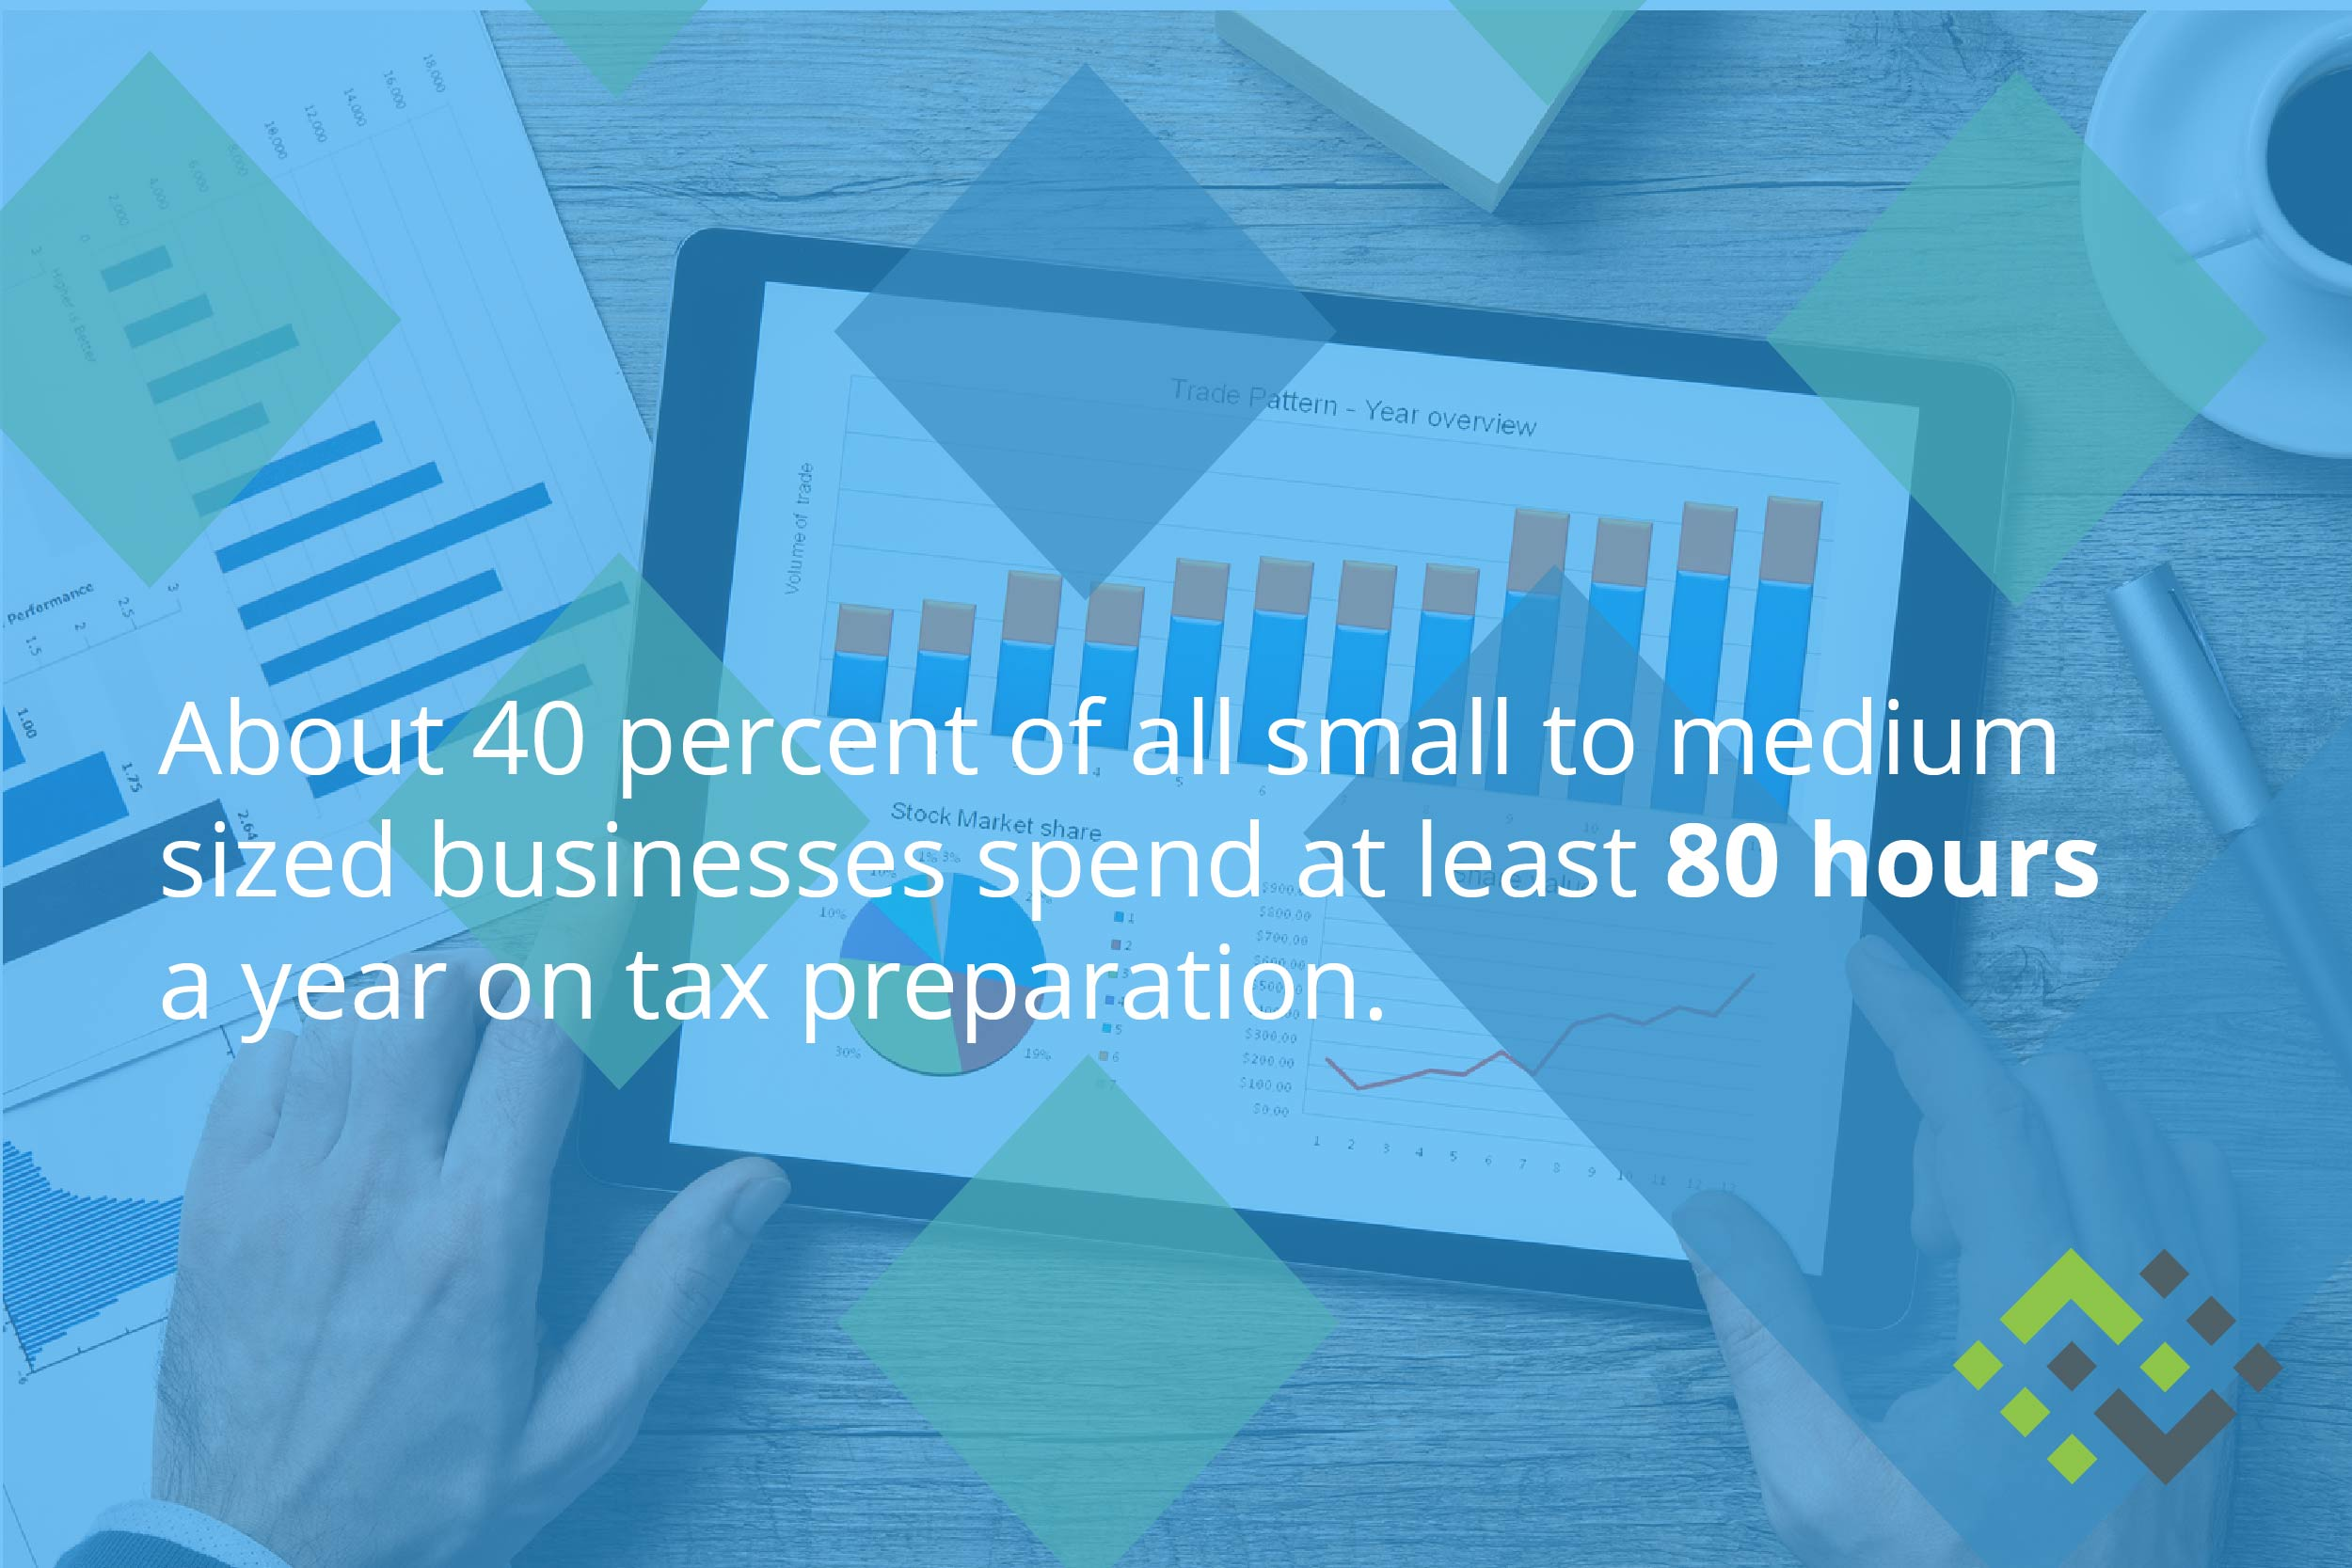 40% of small to medium sized businesses spend at least 80 hours a year on tax preparation.